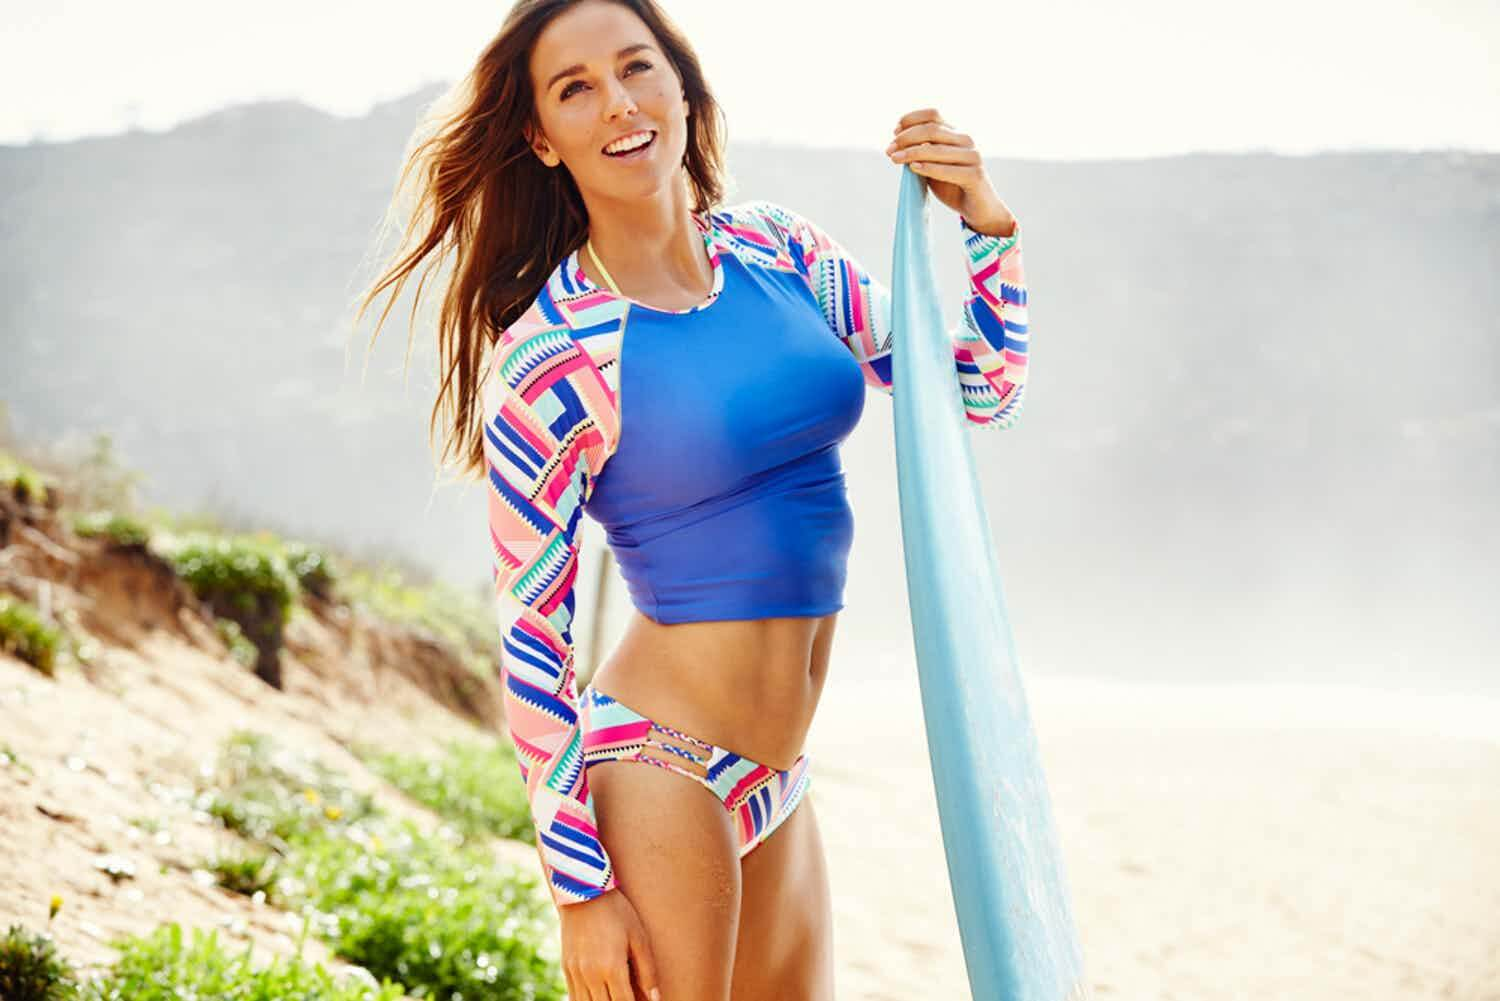 sally fitzgibbons pantie